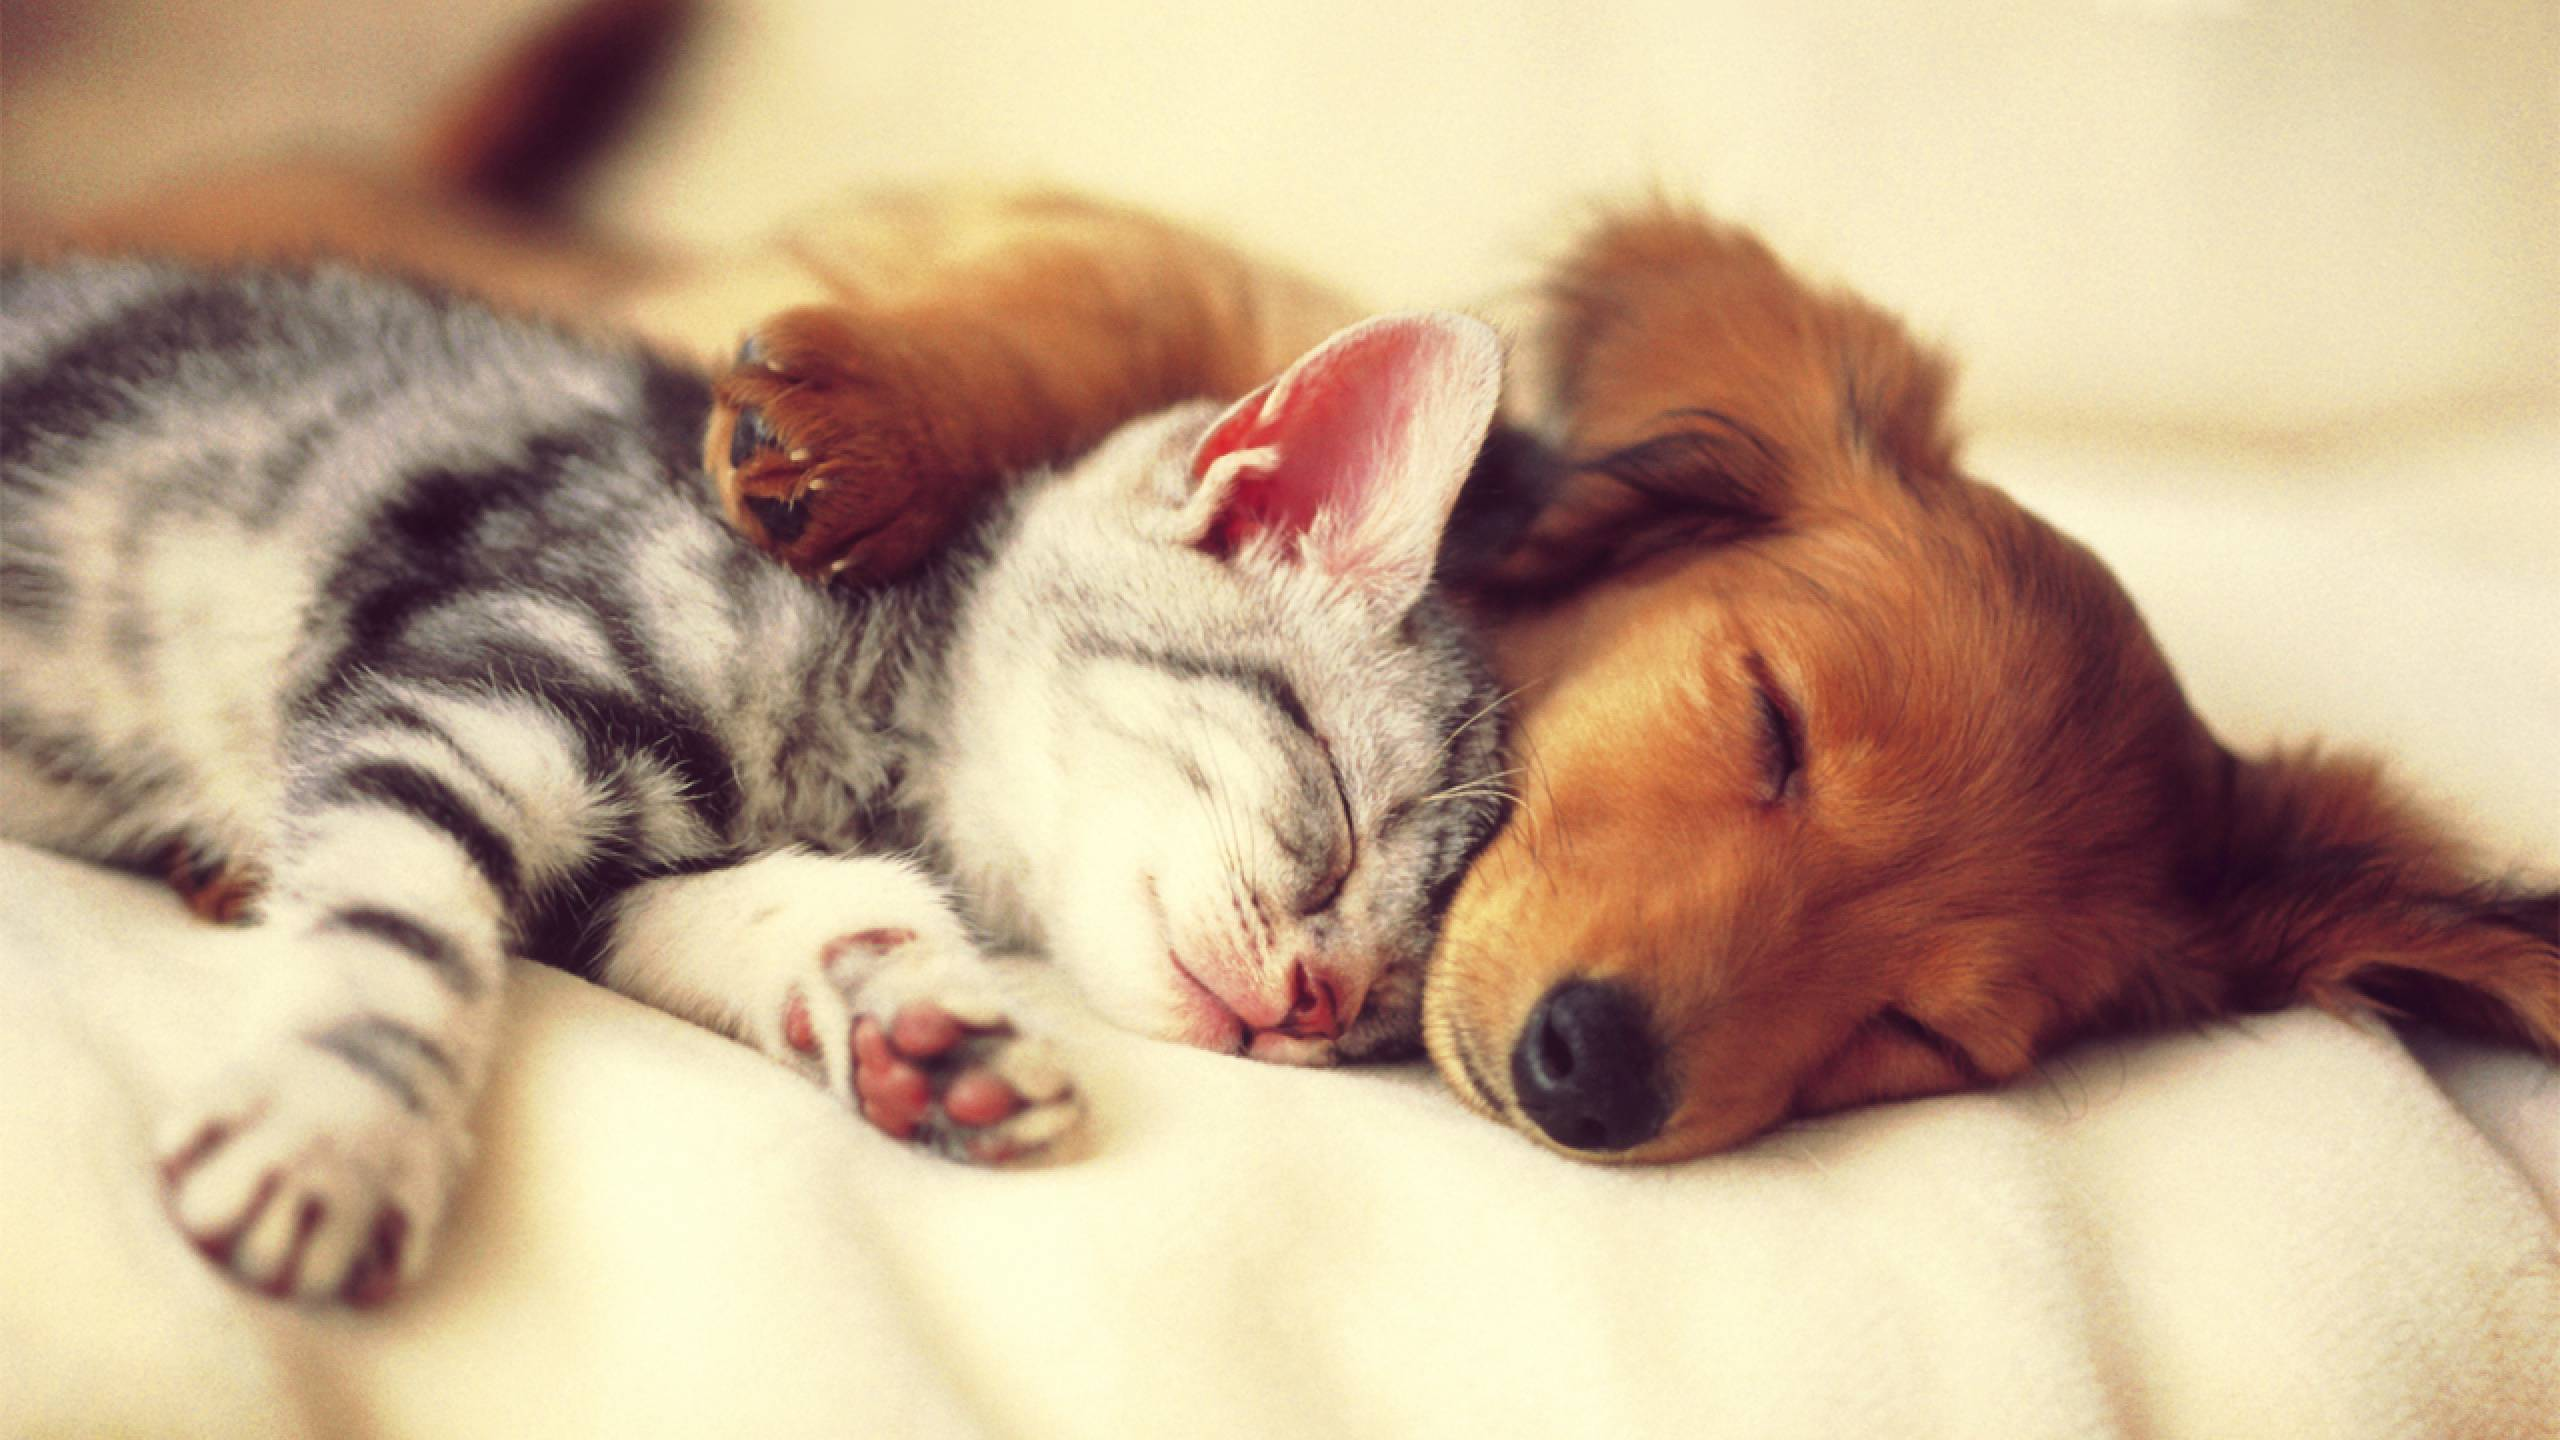 Cute Cat And Dog Sleep Wallpaper